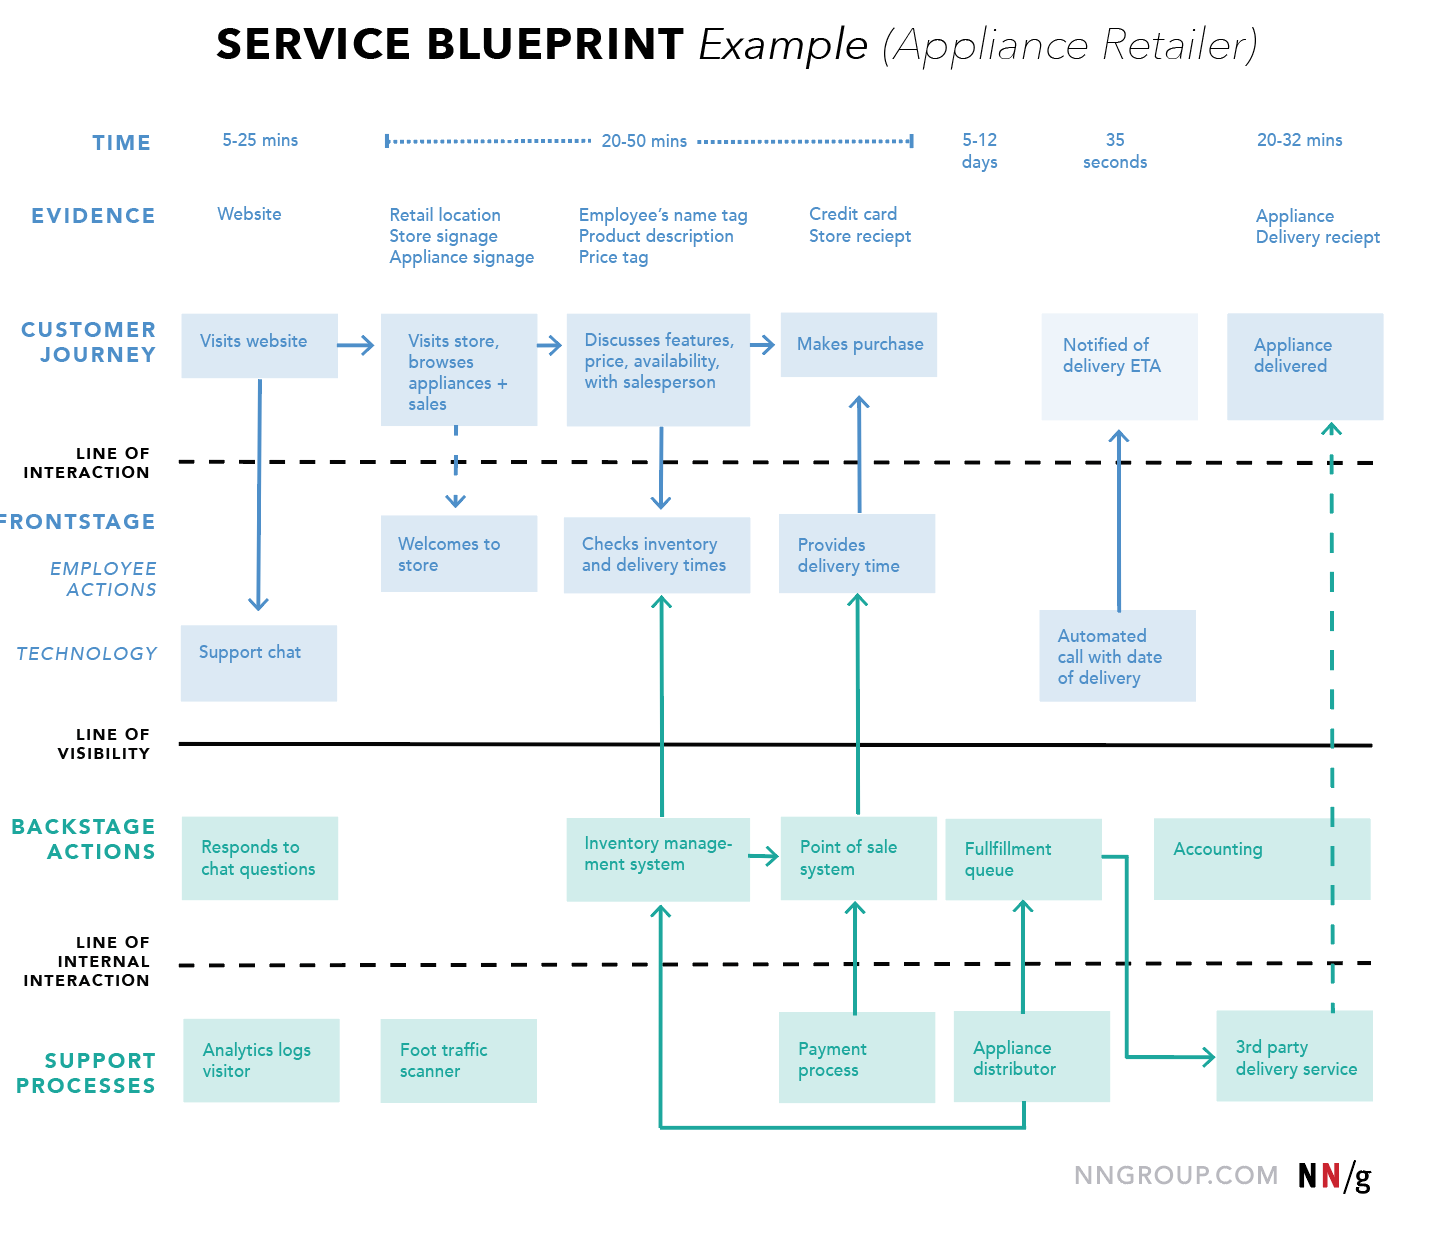 Example of a service blueprint from Nielsen Norman Group. At the top, the time of each stage is shown, followed by a row showing the evidence from each step. In the third row the customer journey is shown, with additional rows showing frontstage and backstage actions.